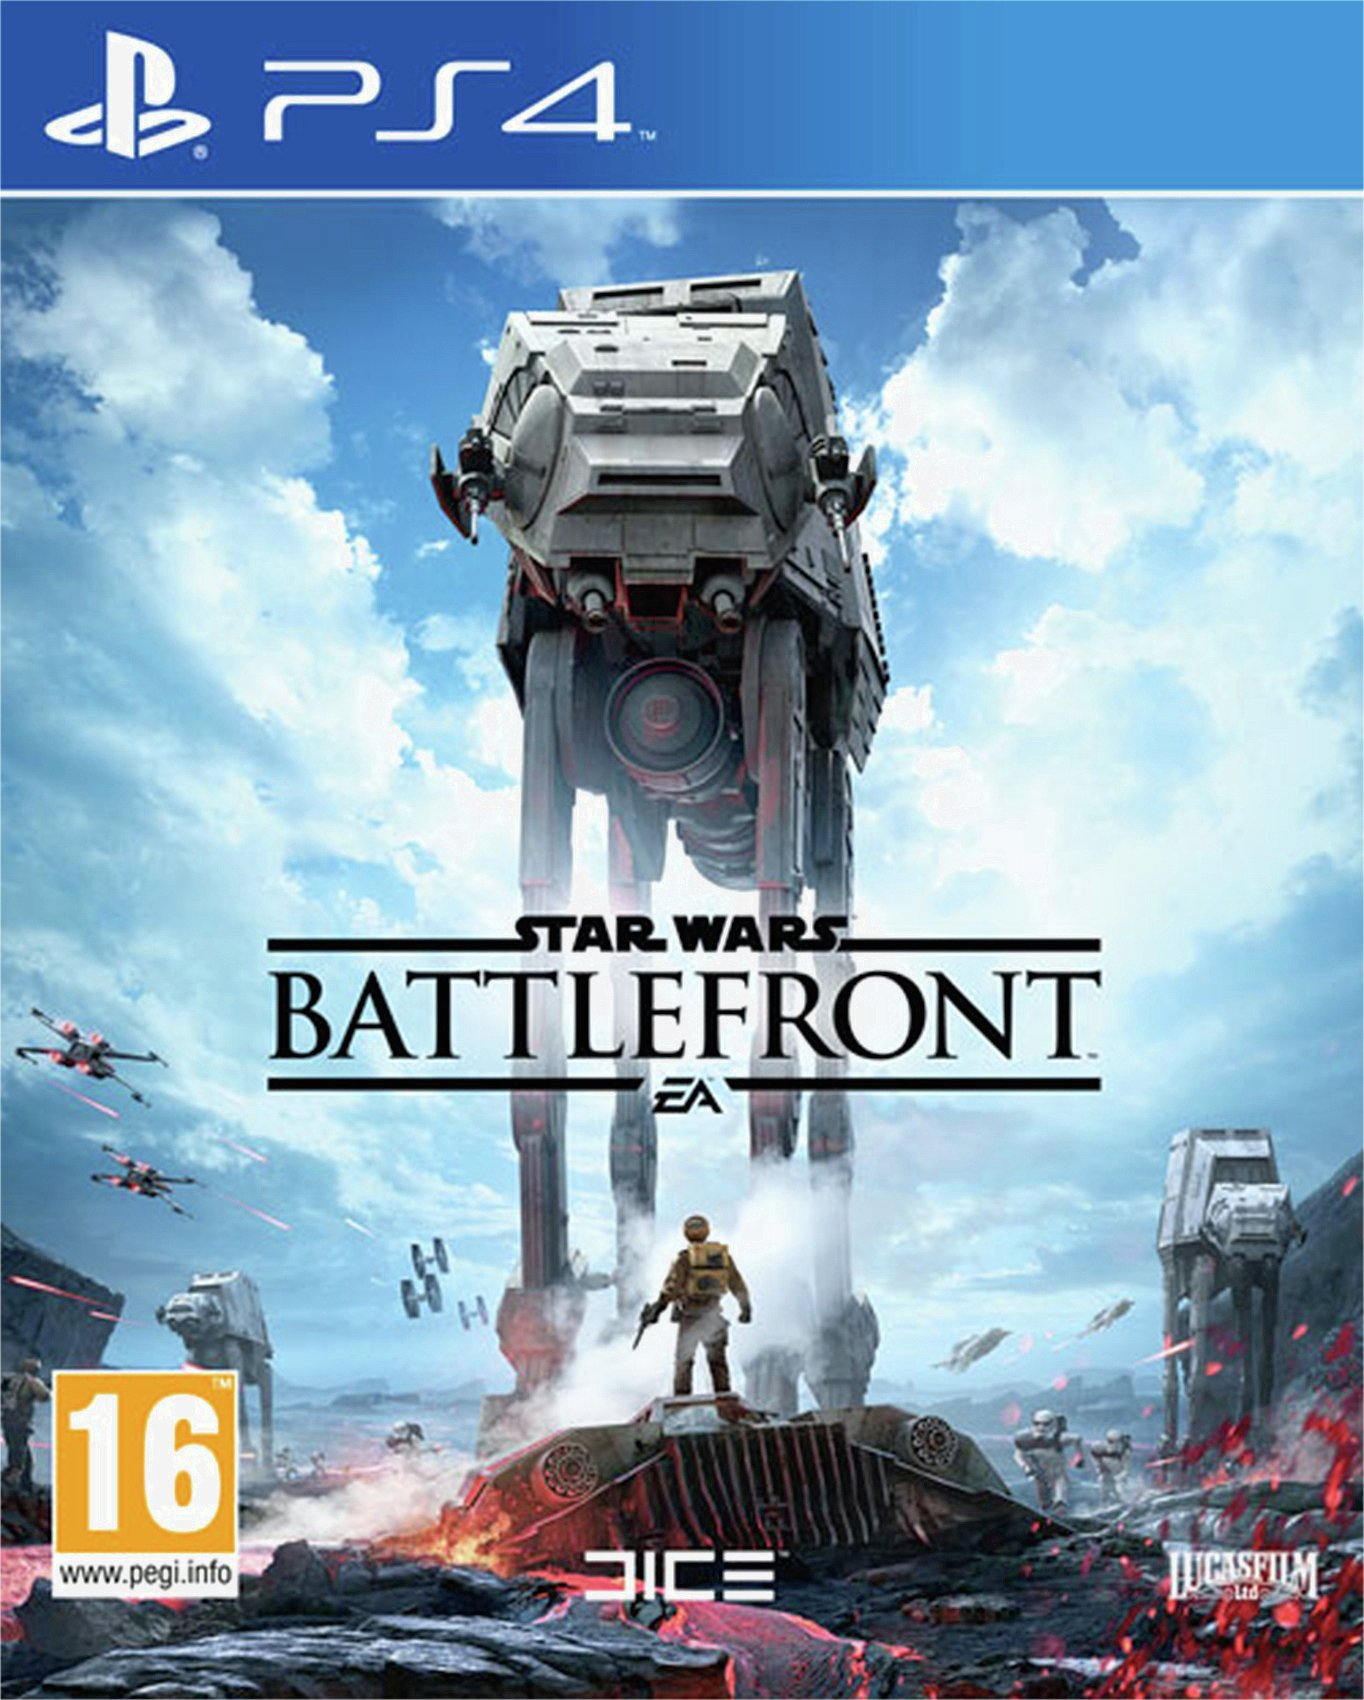 Star Wars Star Wars - Battlefront - PS4 Game.